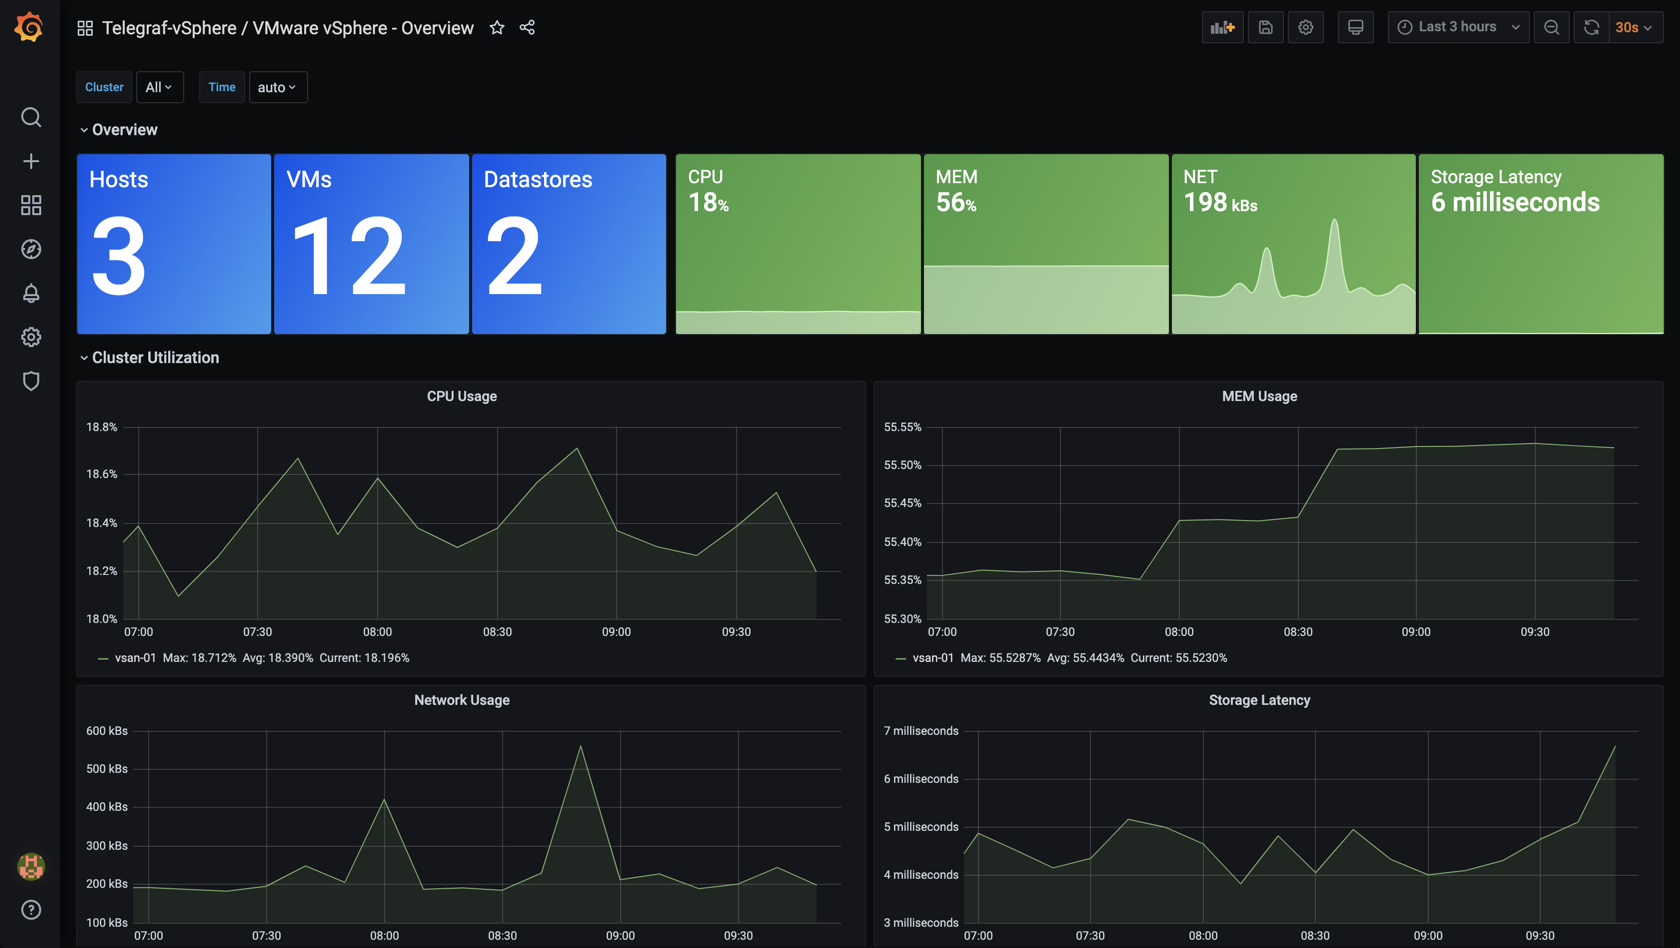 vSphere Overview dashboard